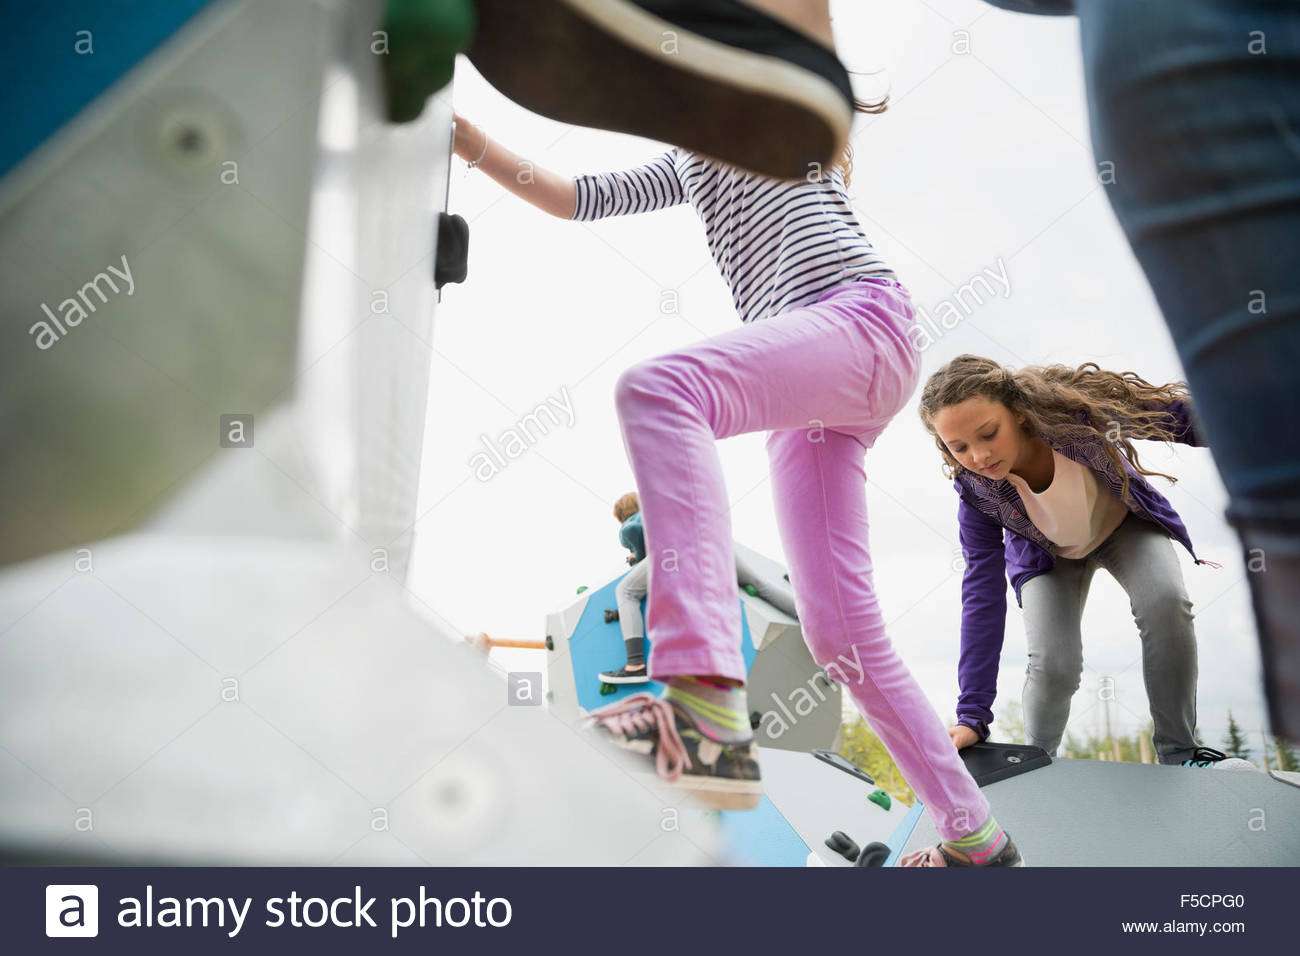 Kids climbing geometric shapes at playground Stock Photo